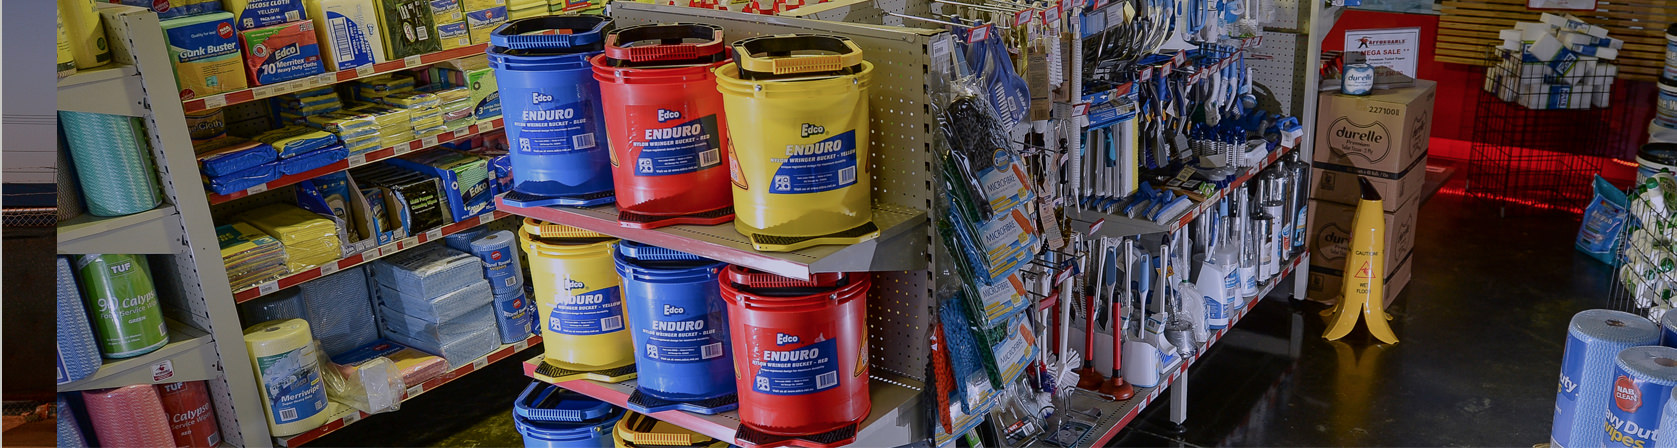 We stock a range of cleaning supplies,<br /> including brooms, mops, buckets, vacuums and carpet cleaners